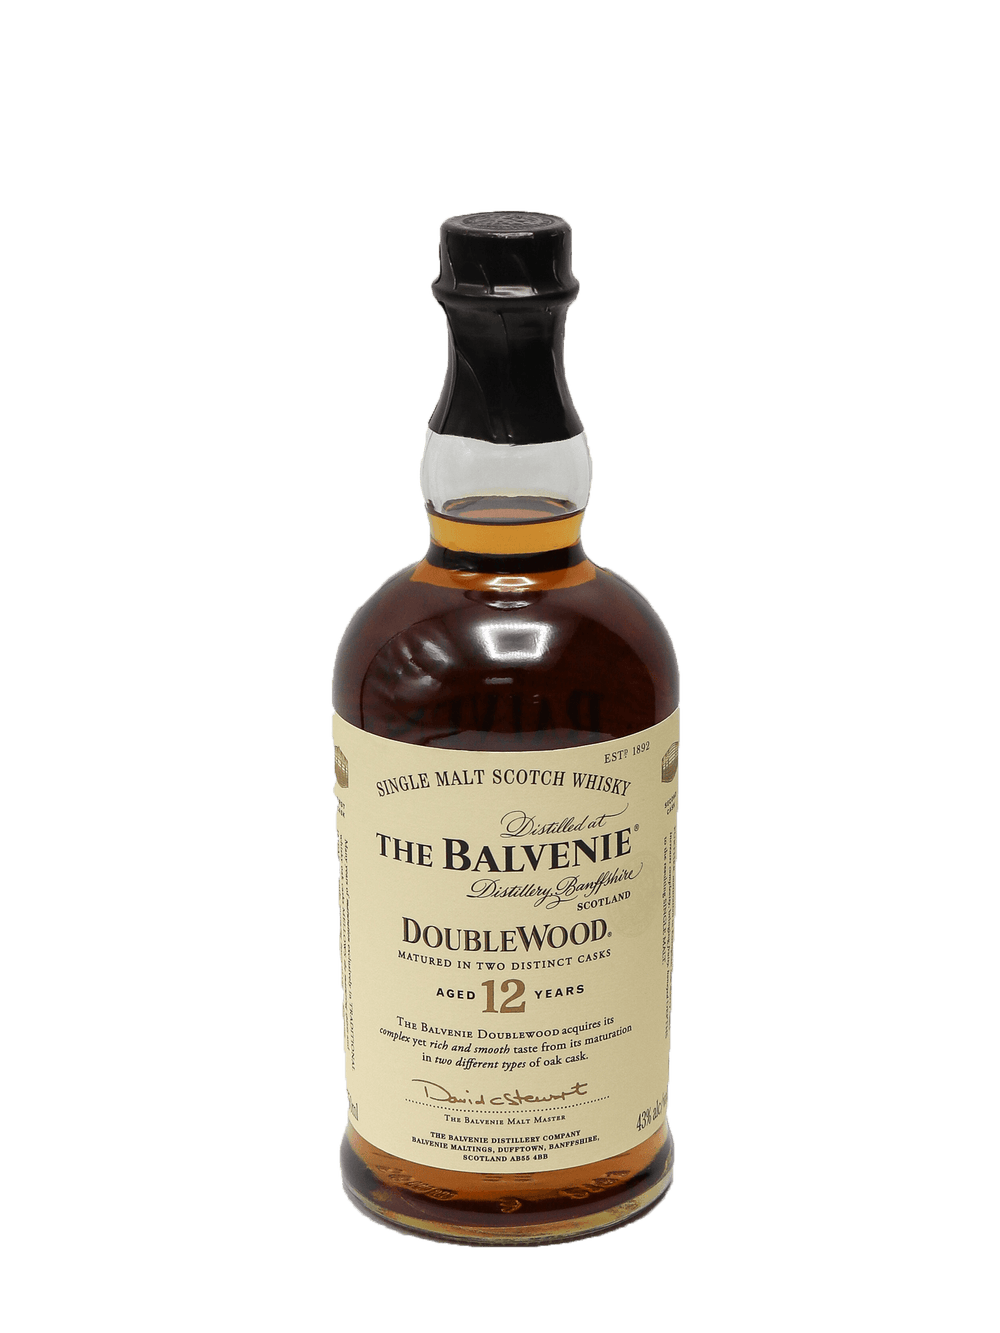 Balvenie Doublewood 12 Year Single Malt Scotch